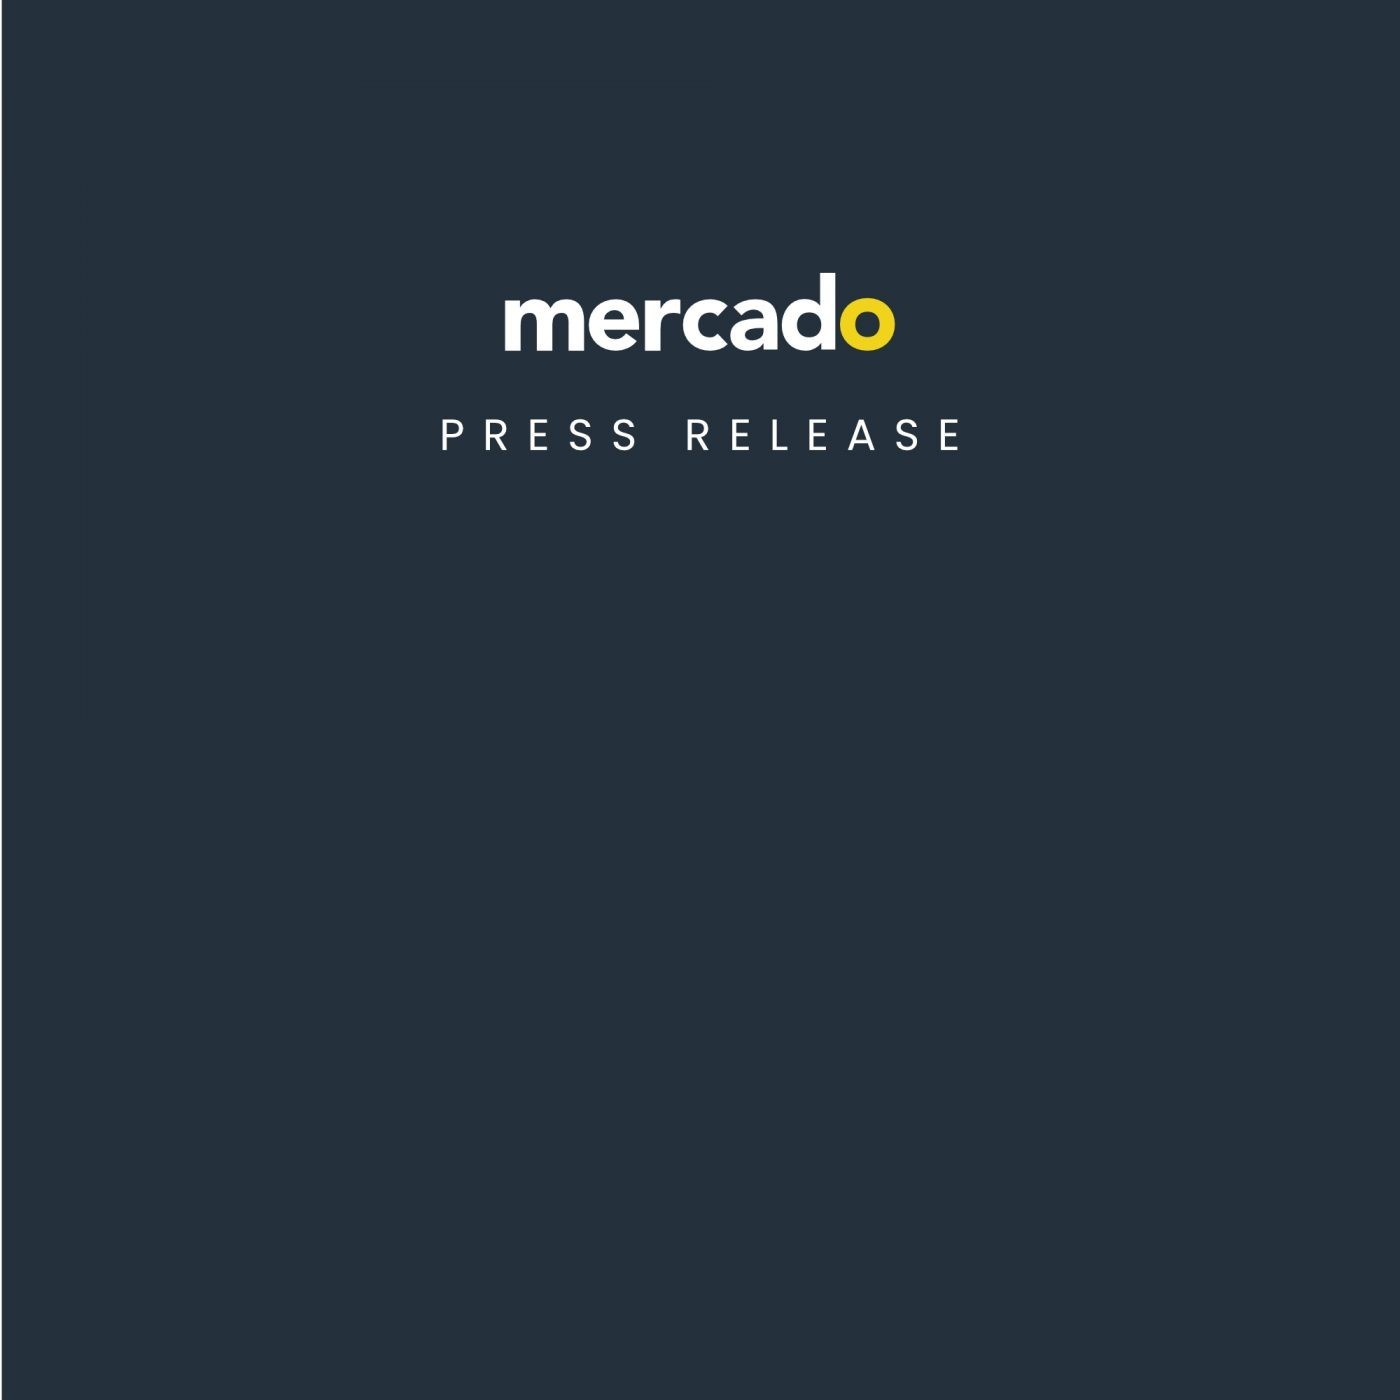 Mercado | Press Release - Mercado 2021: State of the Company Report